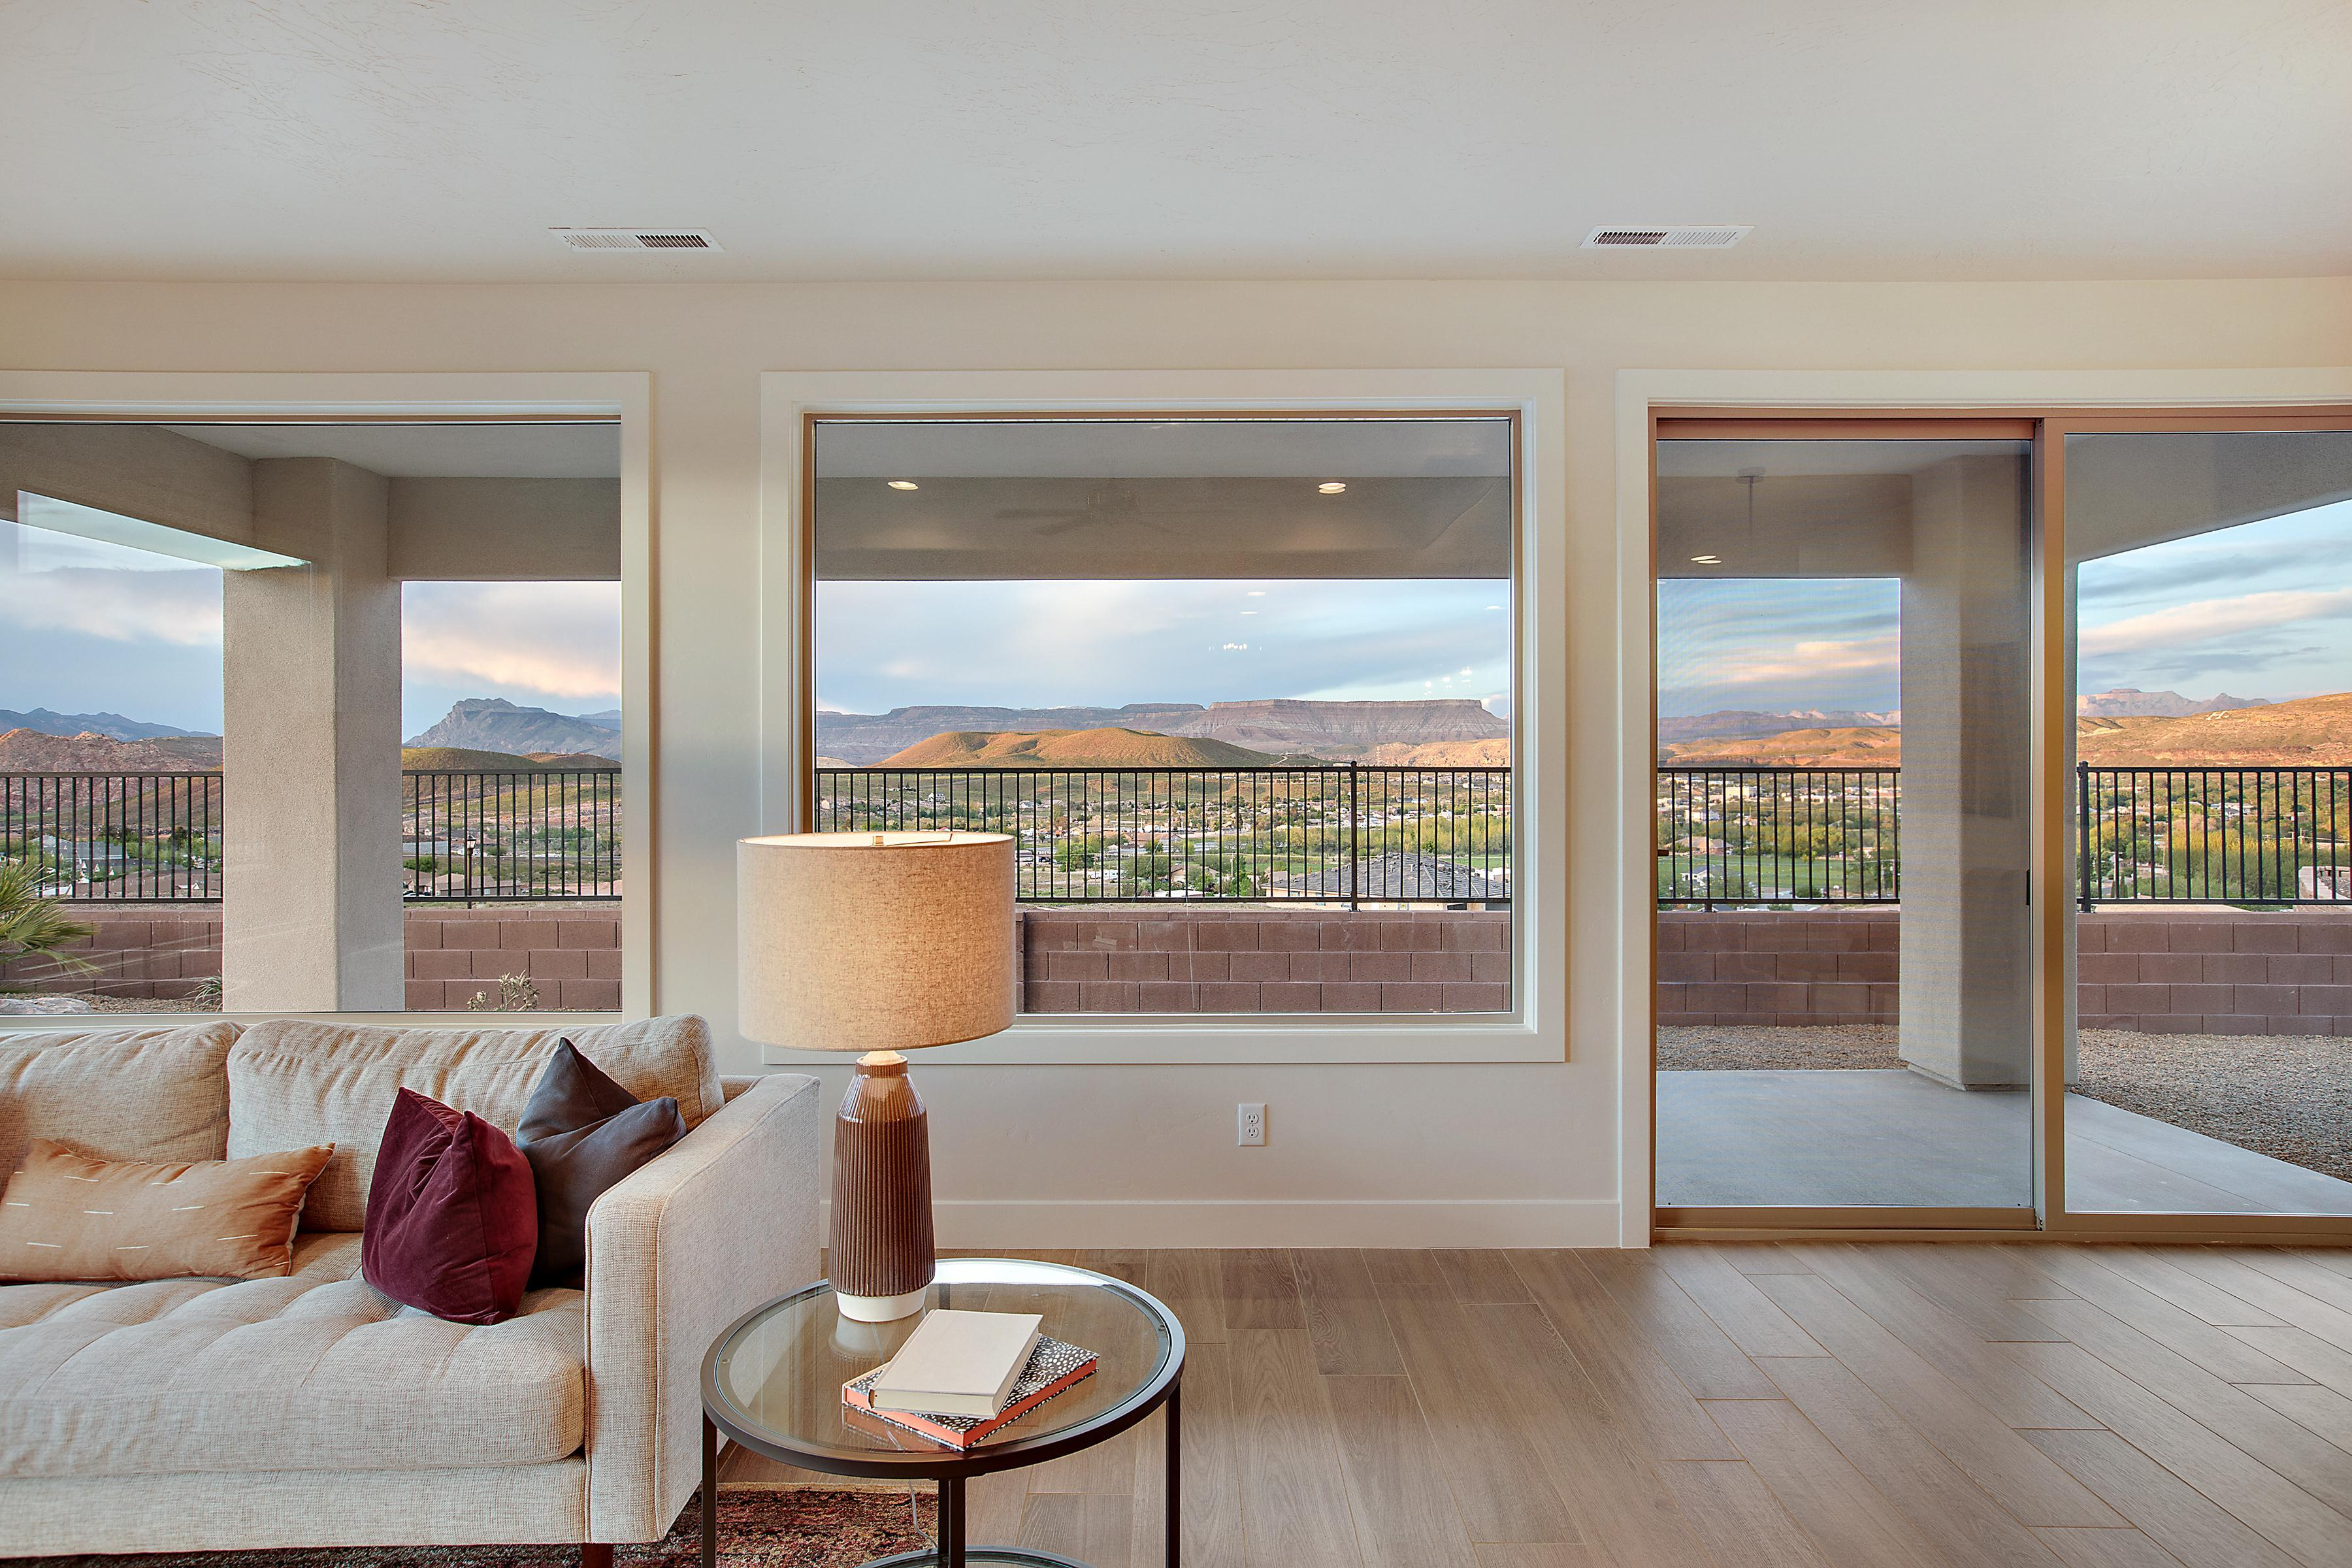 'Zion Vista' by ERA Brokers Consolidated - Zion Vista in St. George